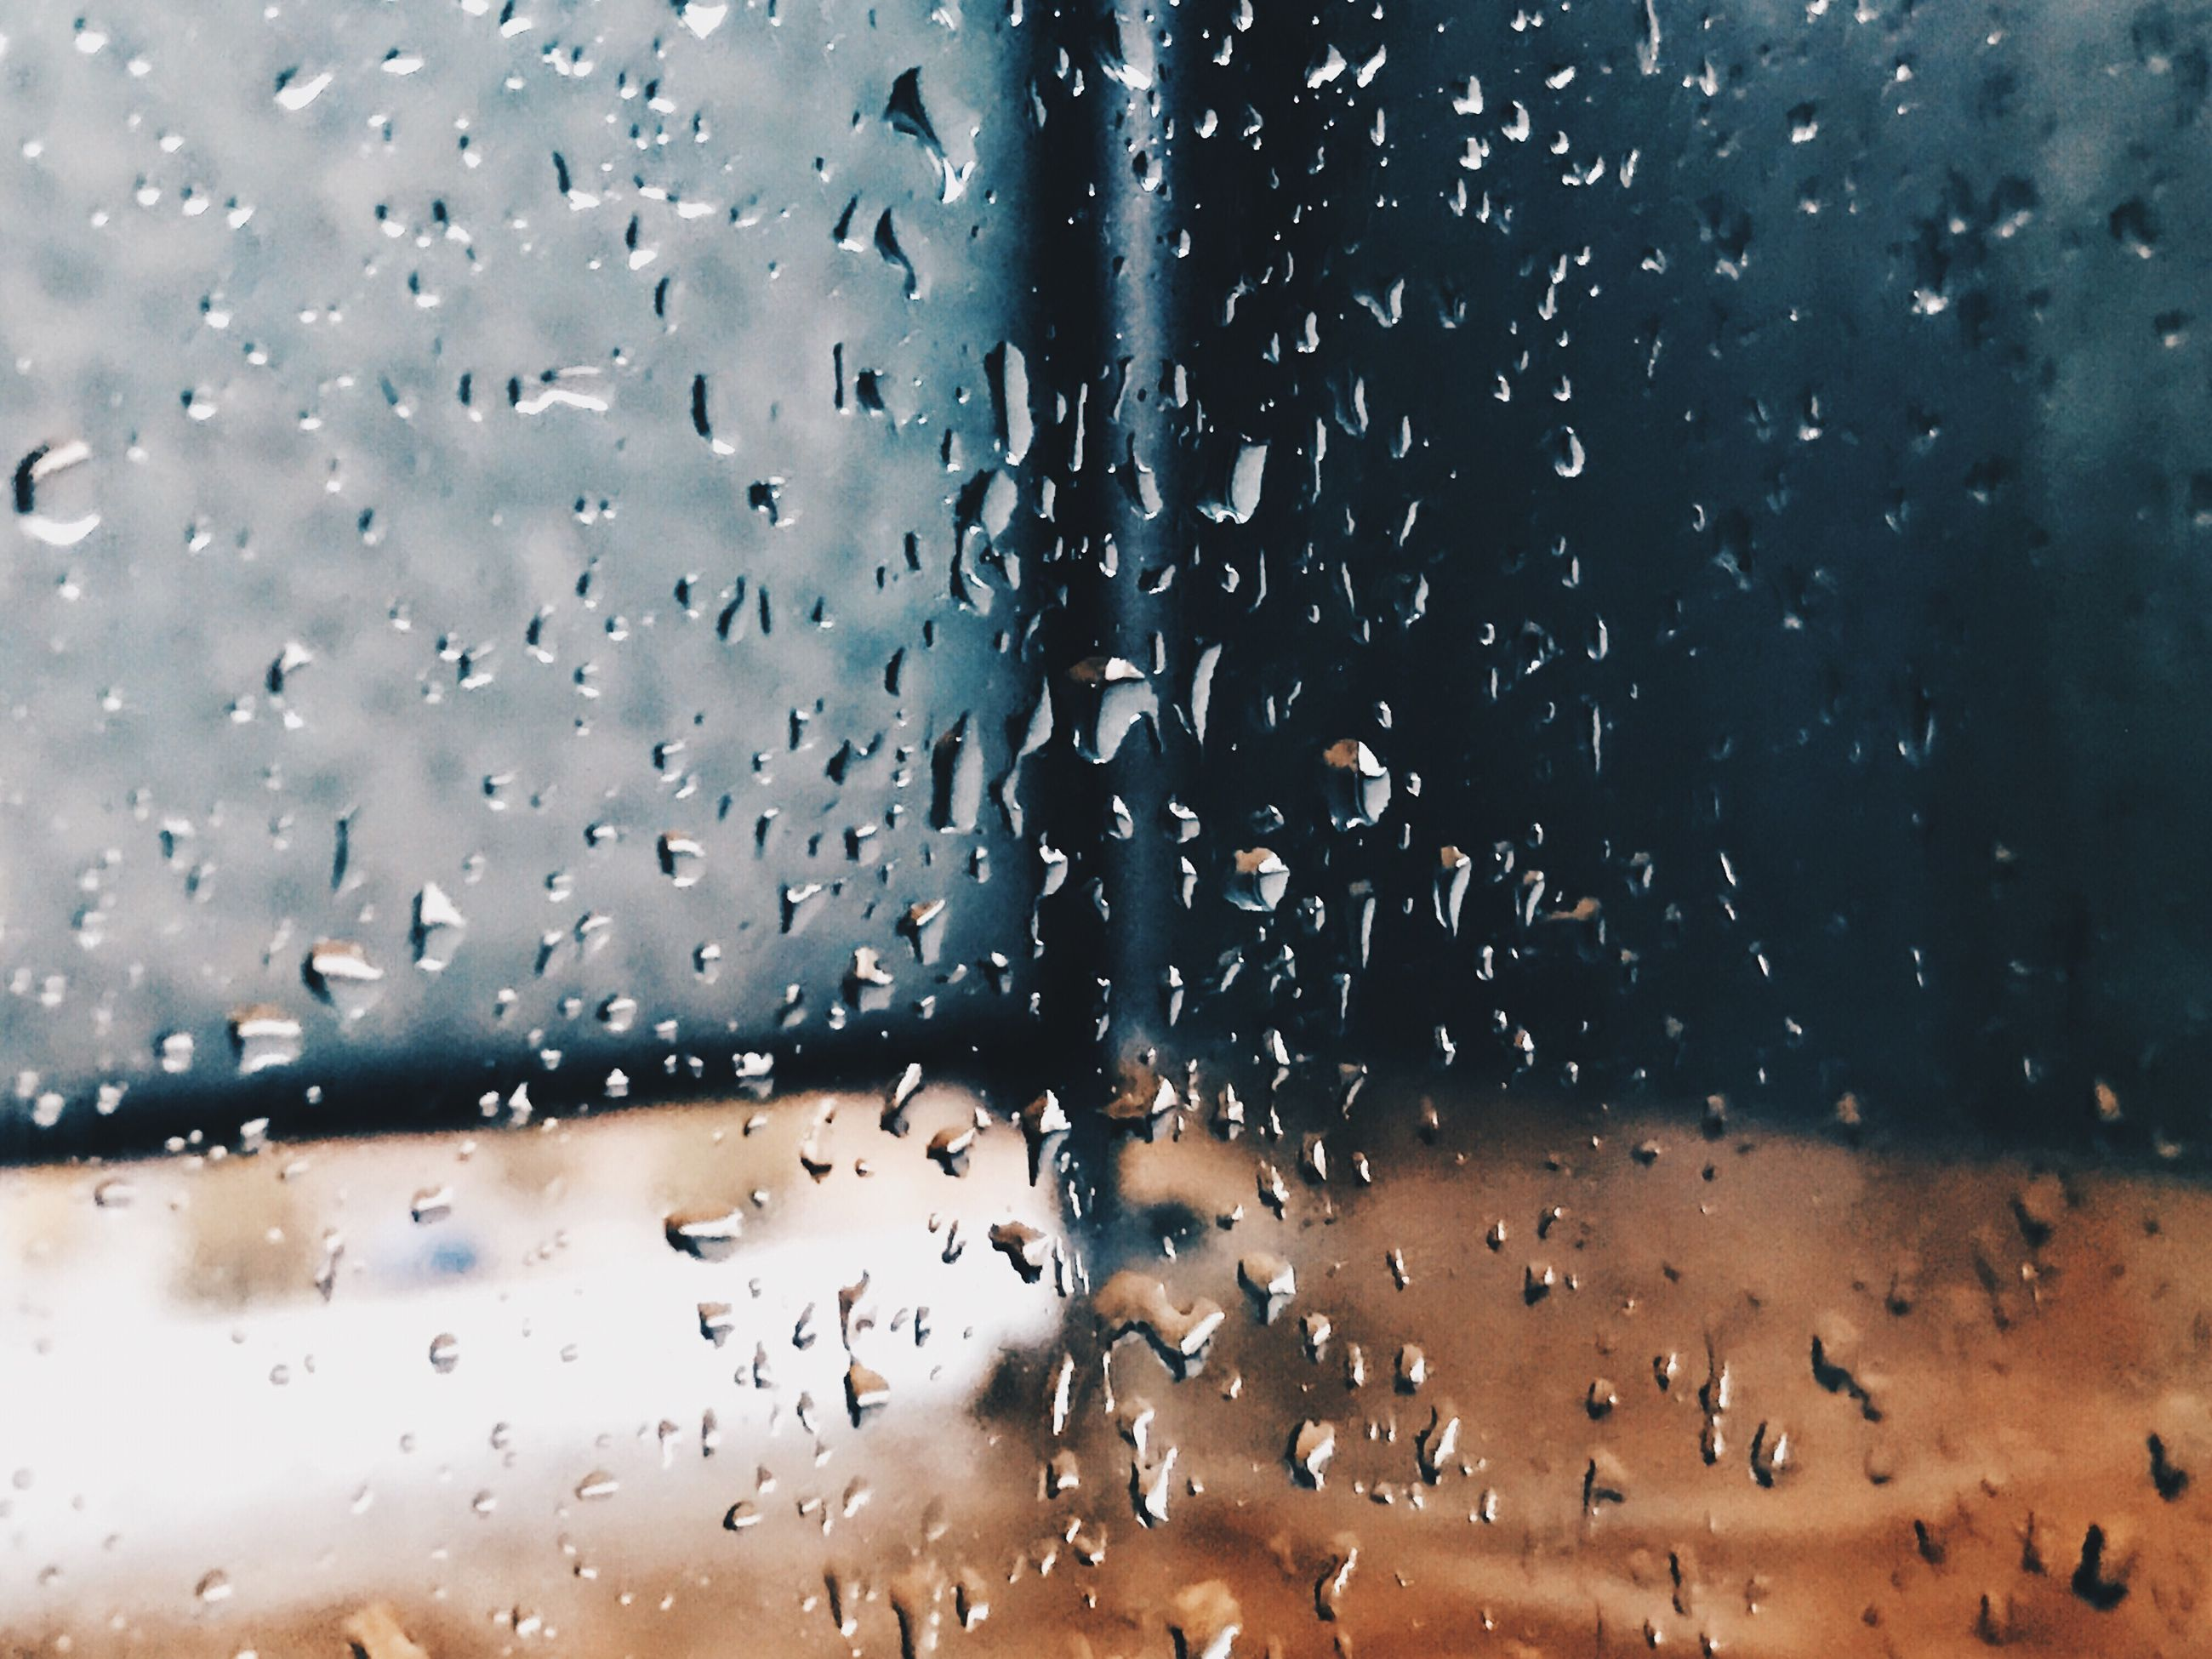 drop, glass - material, window, wet, water, indoors, weather, no people, raindrop, close-up, day, land vehicle, full frame, nature, sky